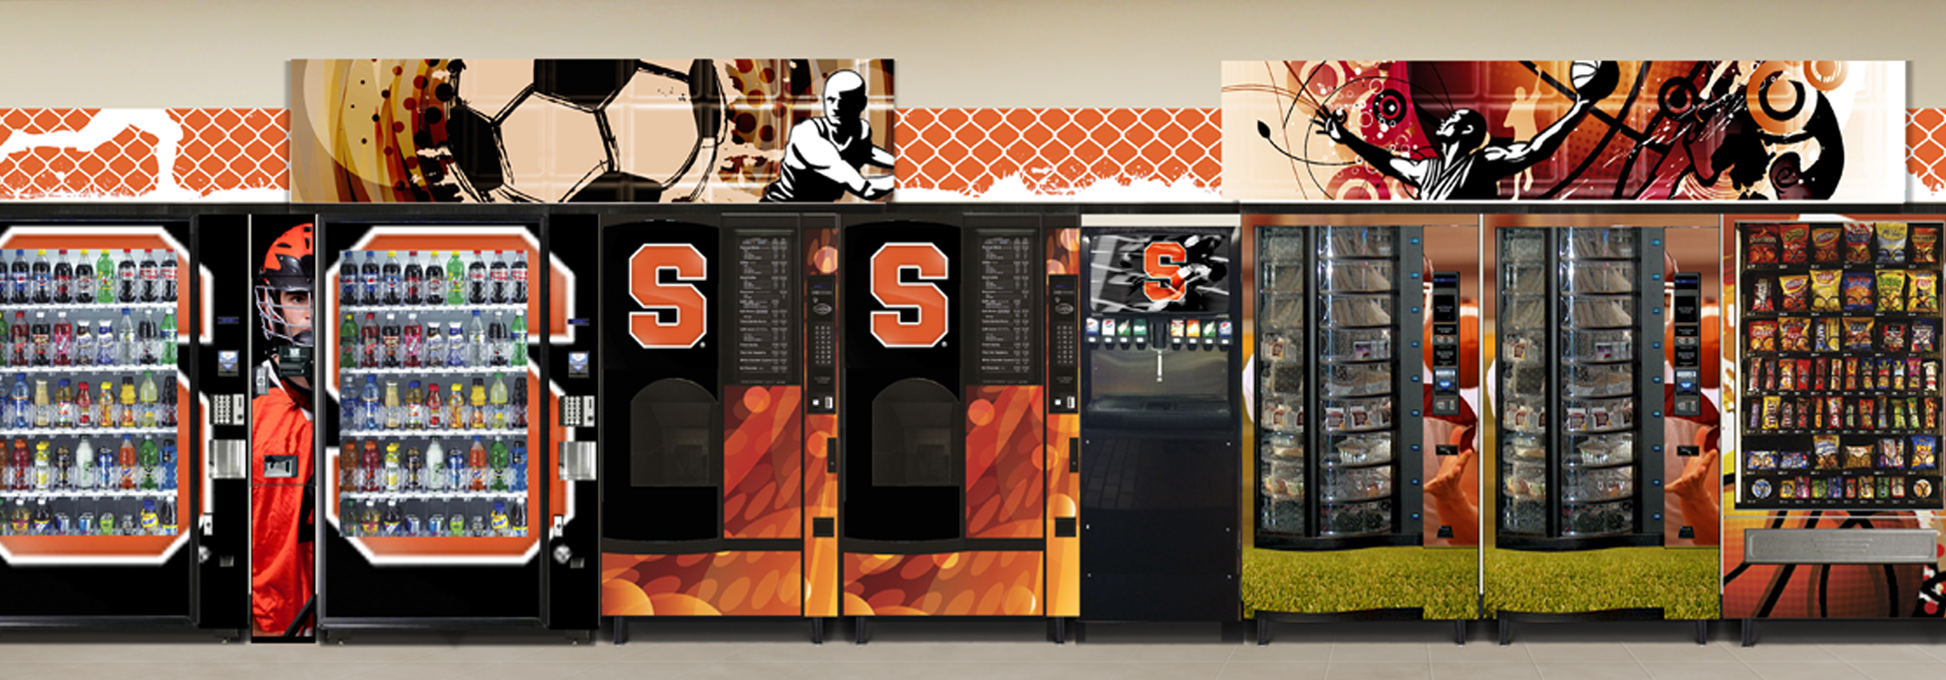 Syracuse University vending